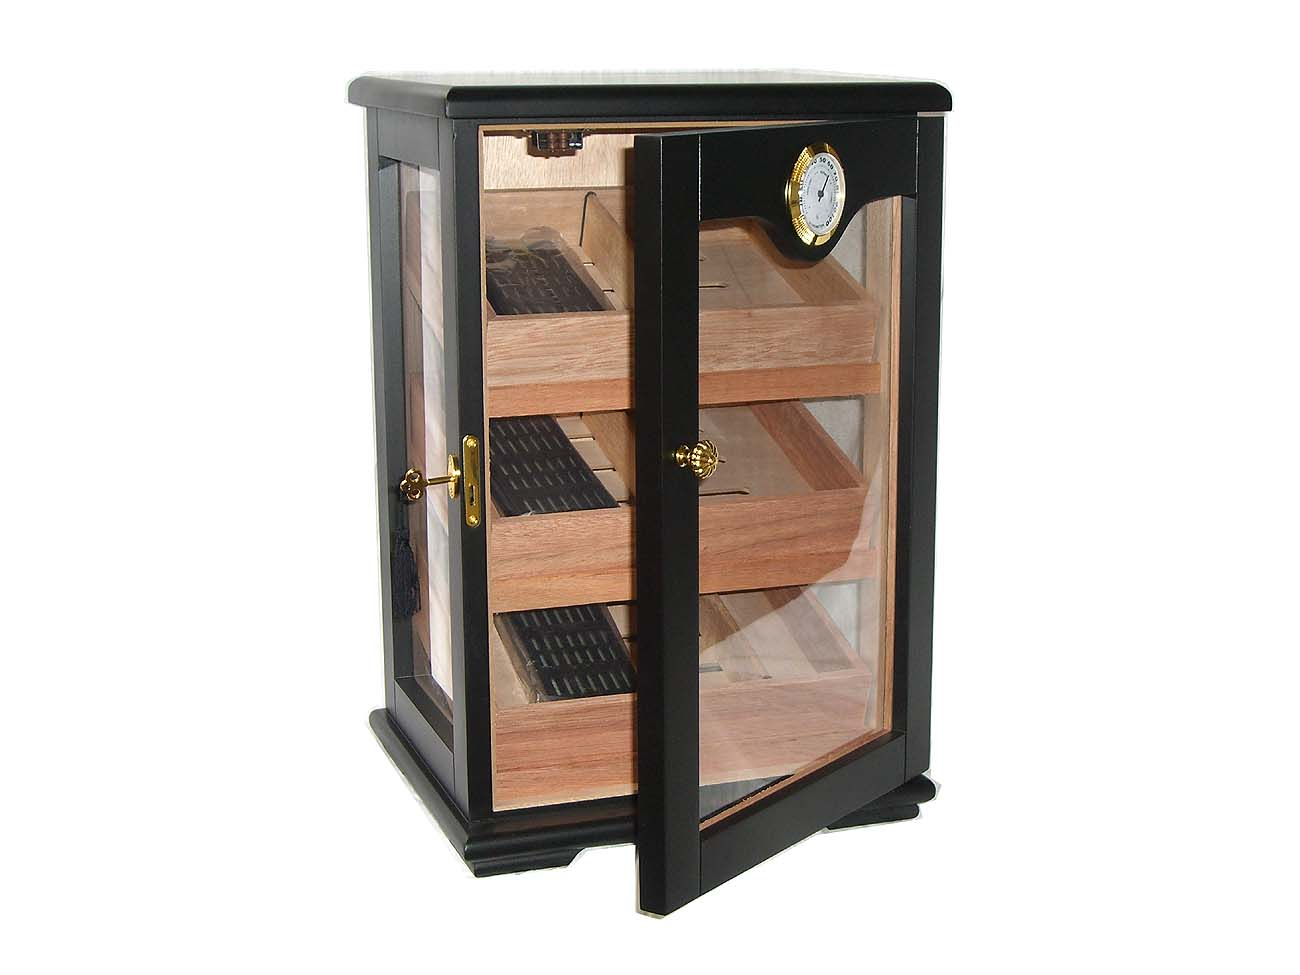 humidor schrank vitrine in schwarz lifestyle topshop. Black Bedroom Furniture Sets. Home Design Ideas